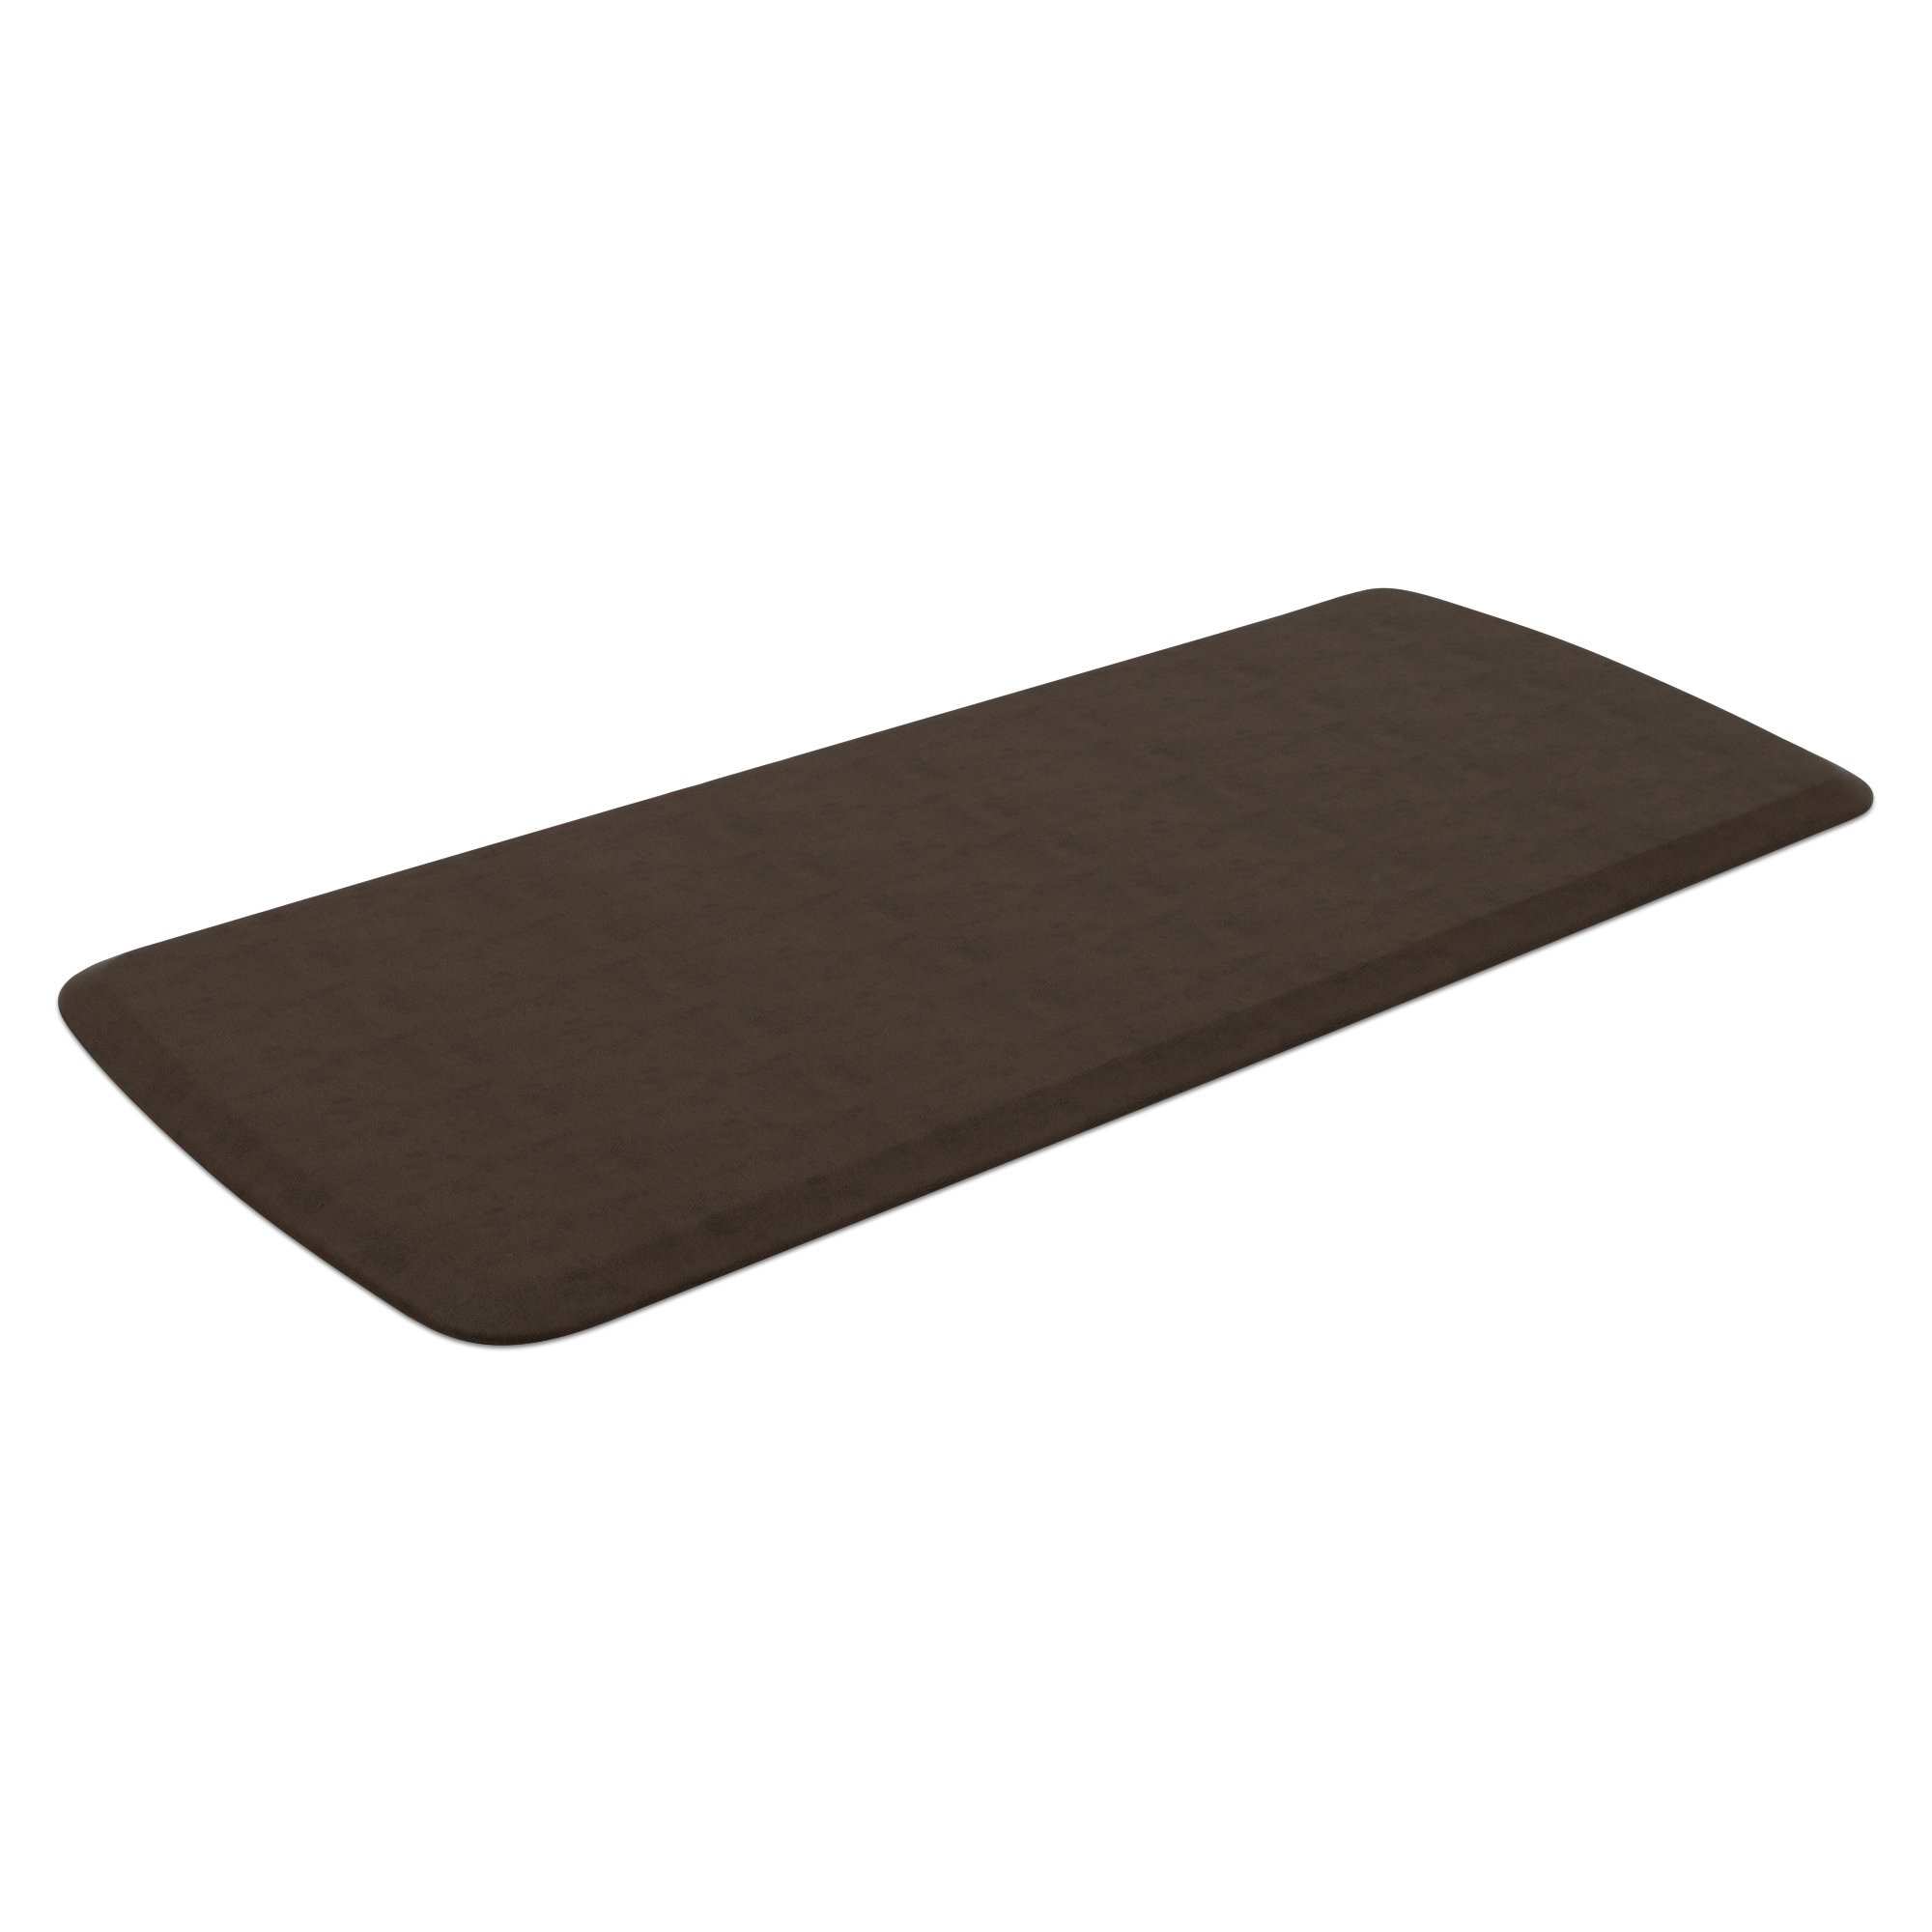 """GelPro Elite Premier Anti-Fatigue Kitchen Comfort Floor Mat, 20x48"""", Vintage Leather Rustic Brown Stain Resistant Surface with Therapeutic Gel and Energy-return Foam for Health and Wellness by GelPro (Image #2)"""